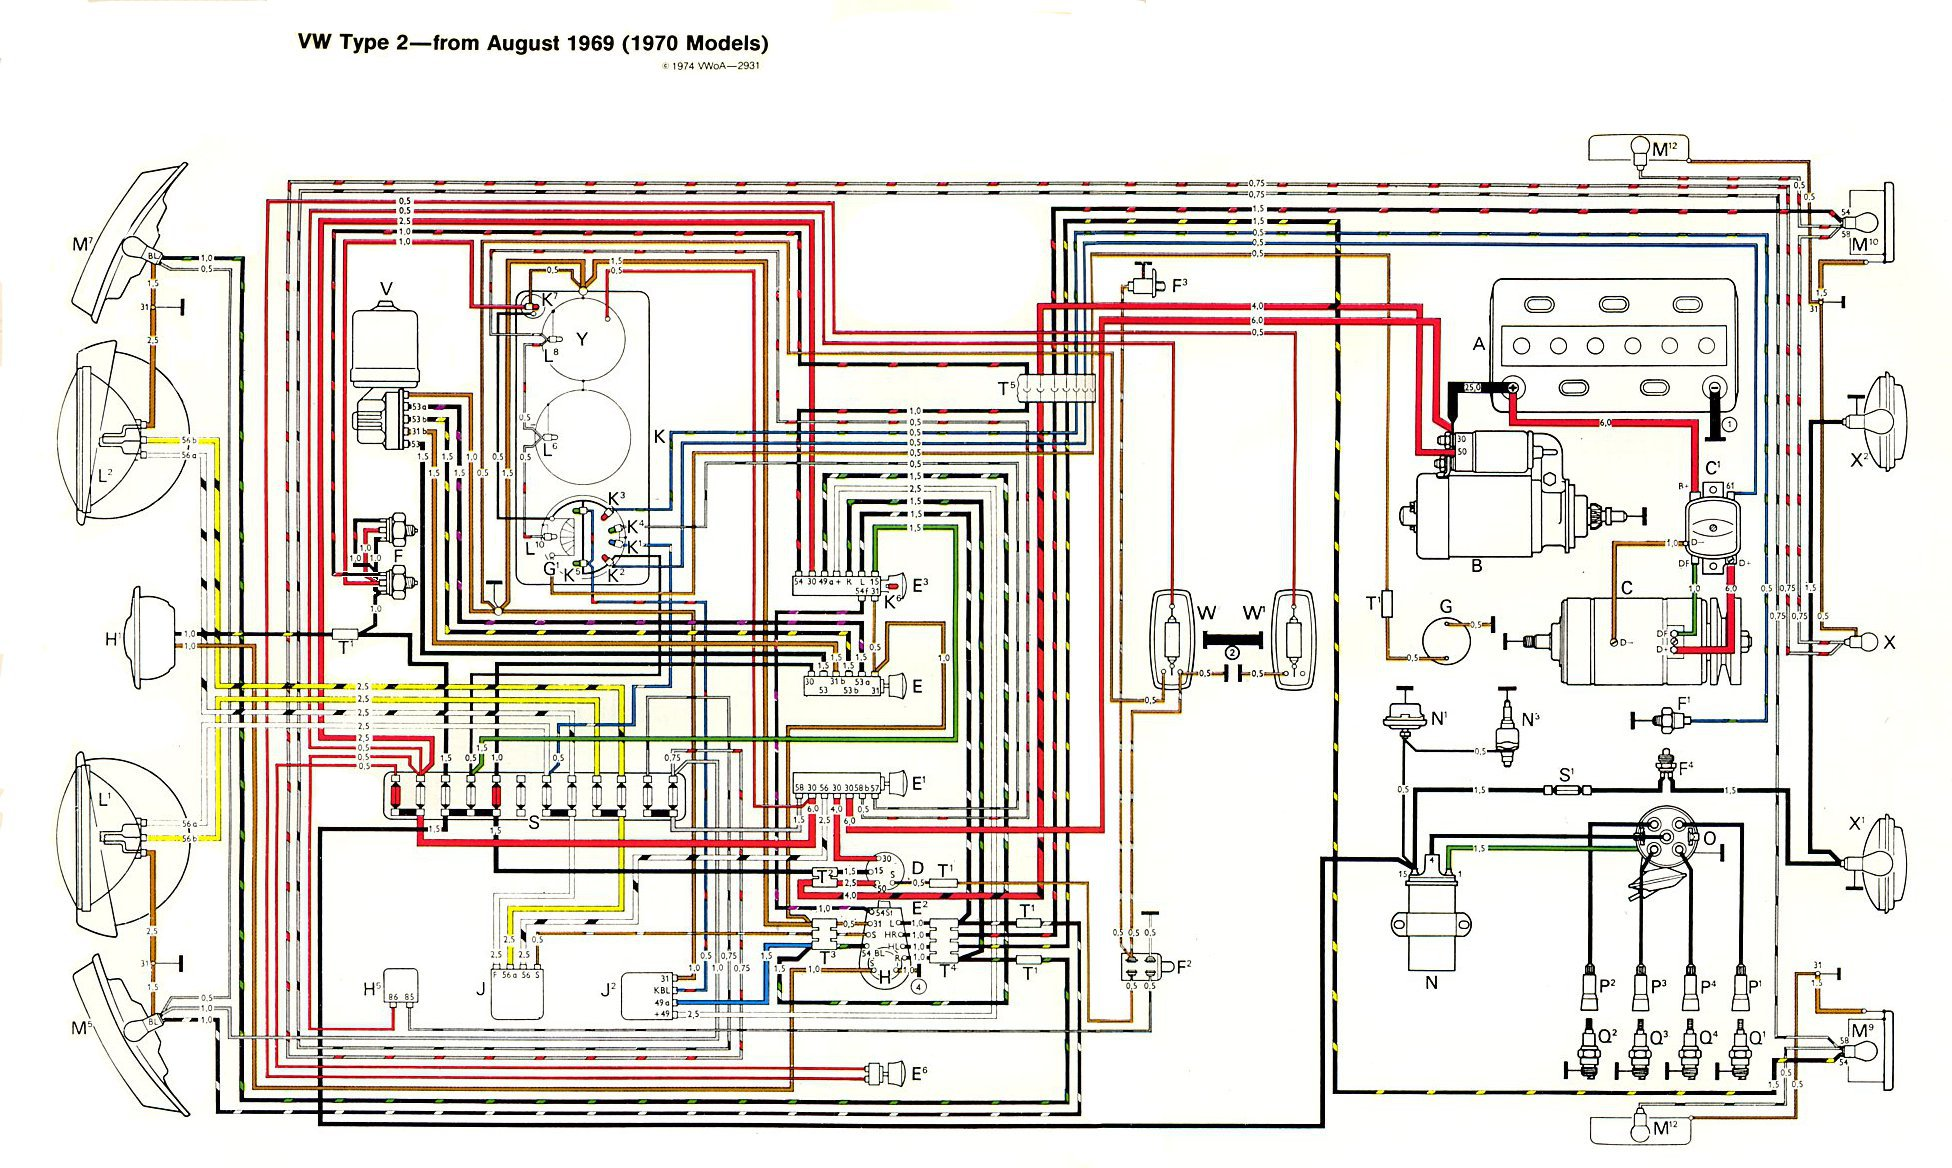 Vw Buggy Wiring Diagram For A 1600 Will Be Thing Dune Thesamba Com Type 2 Diagrams 73 Beetle